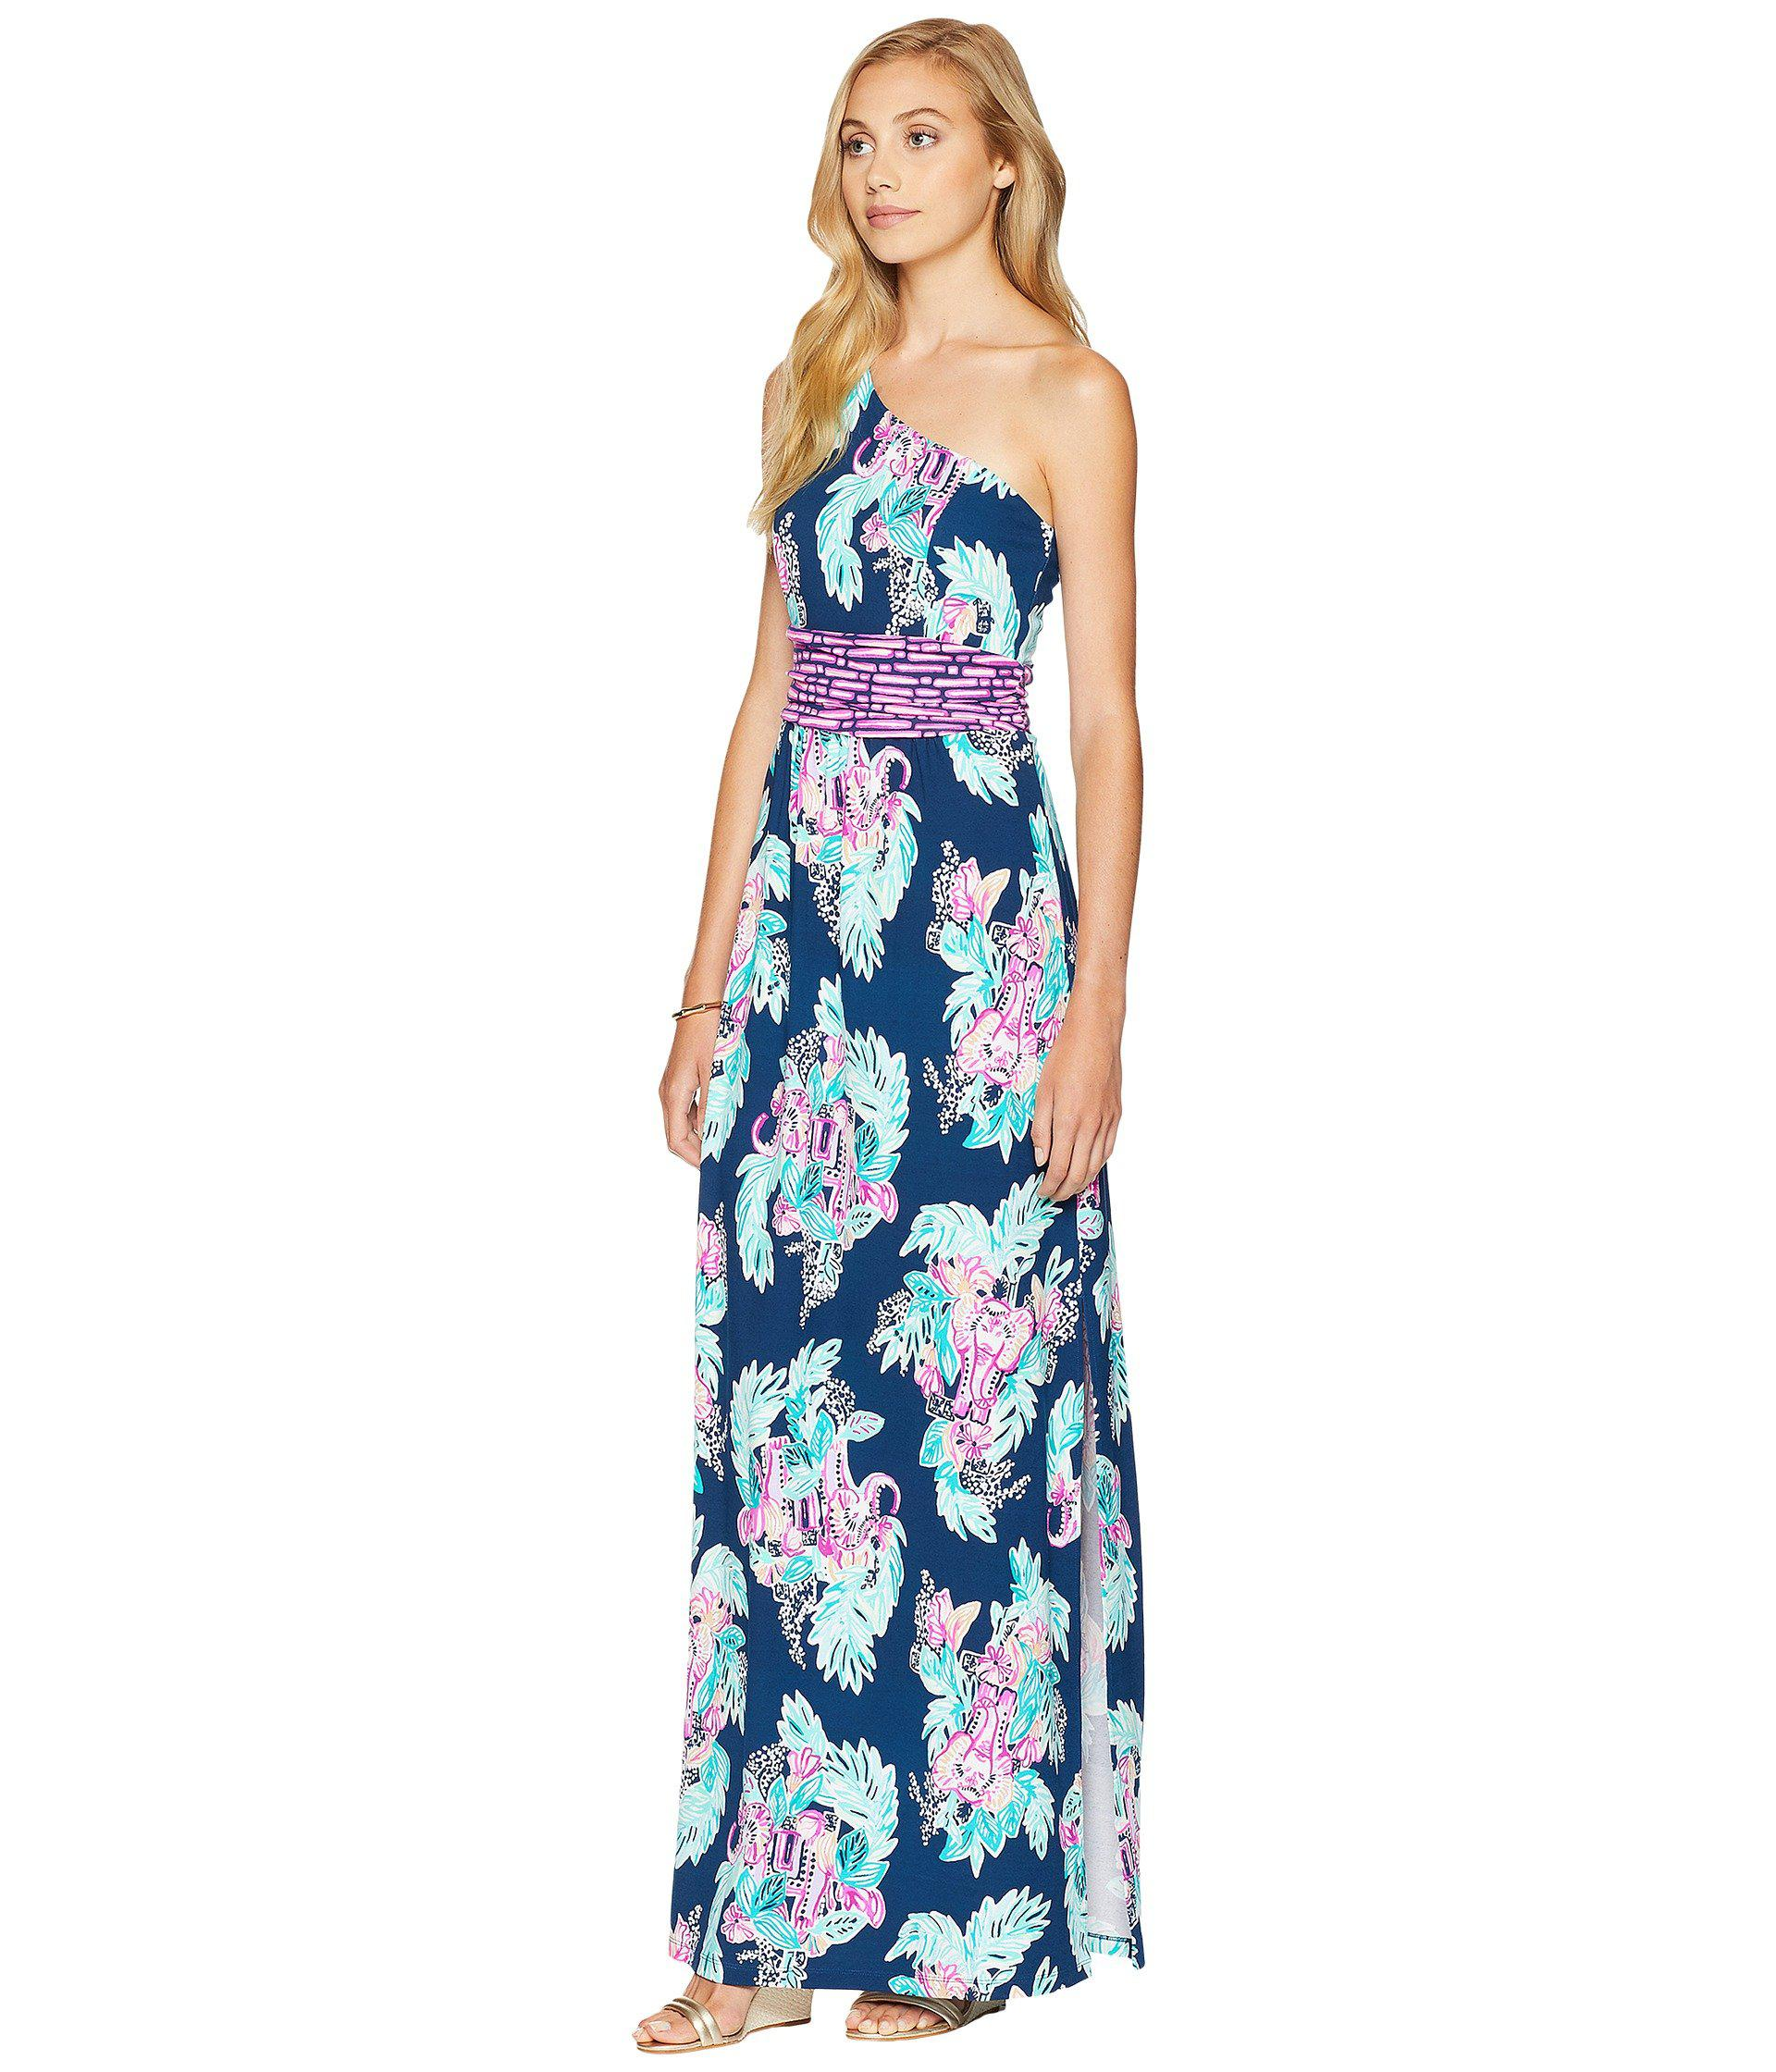 def67bcd10 Lilly Pulitzer Lilly Pulitzer Malia One-shoulder Maxi Dress in Blue ...